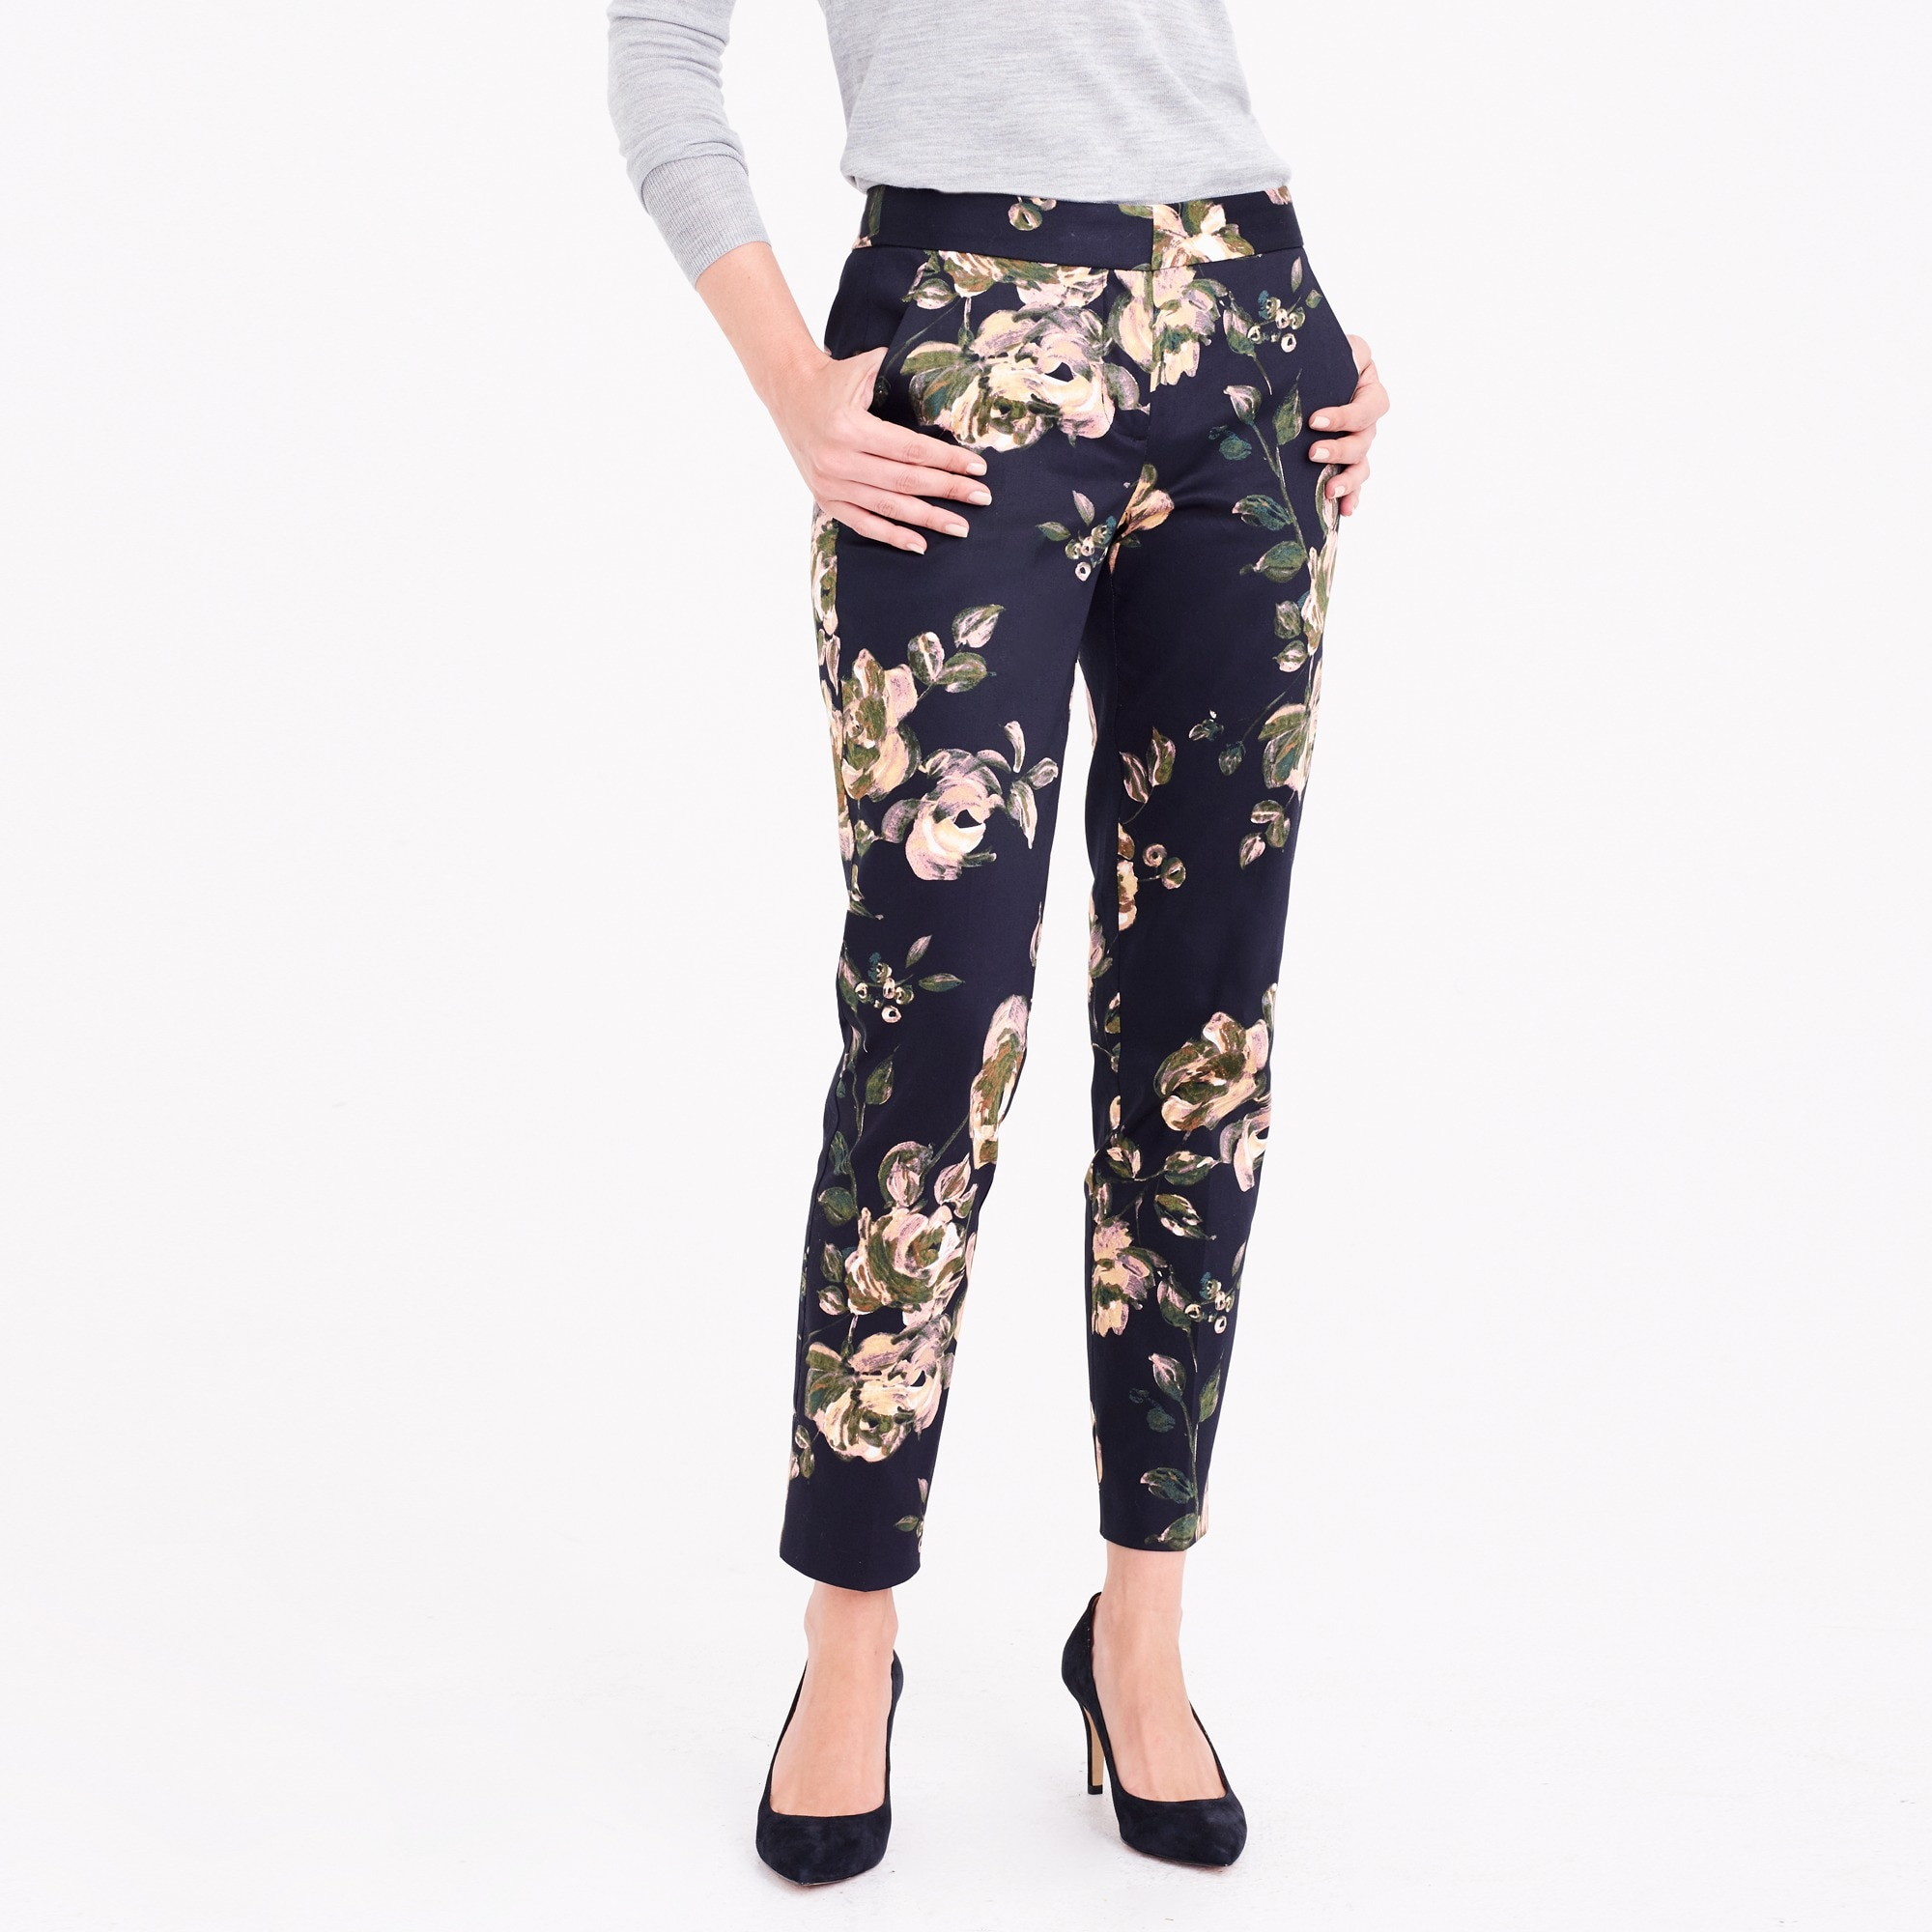 Slim crop printed pant